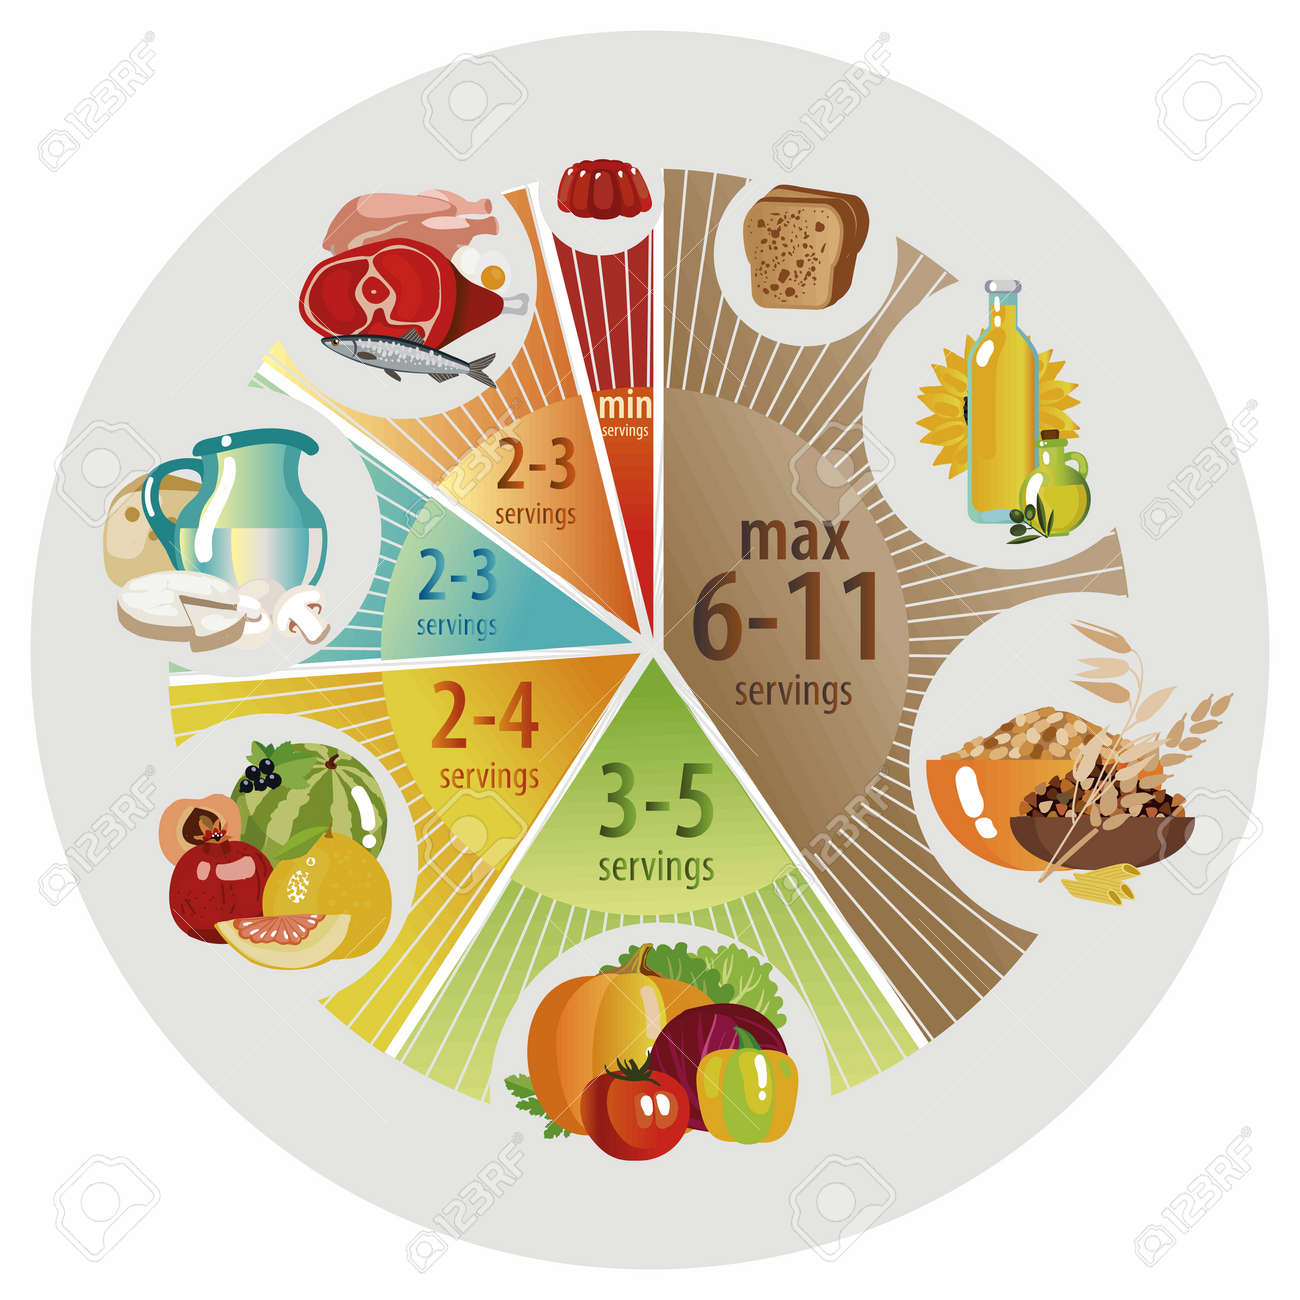 Food Pyramid In The Form Of A Pie Chart Recommendation For A Royalty Free Cliparts Vectors And Stock Illustration Image 97792952